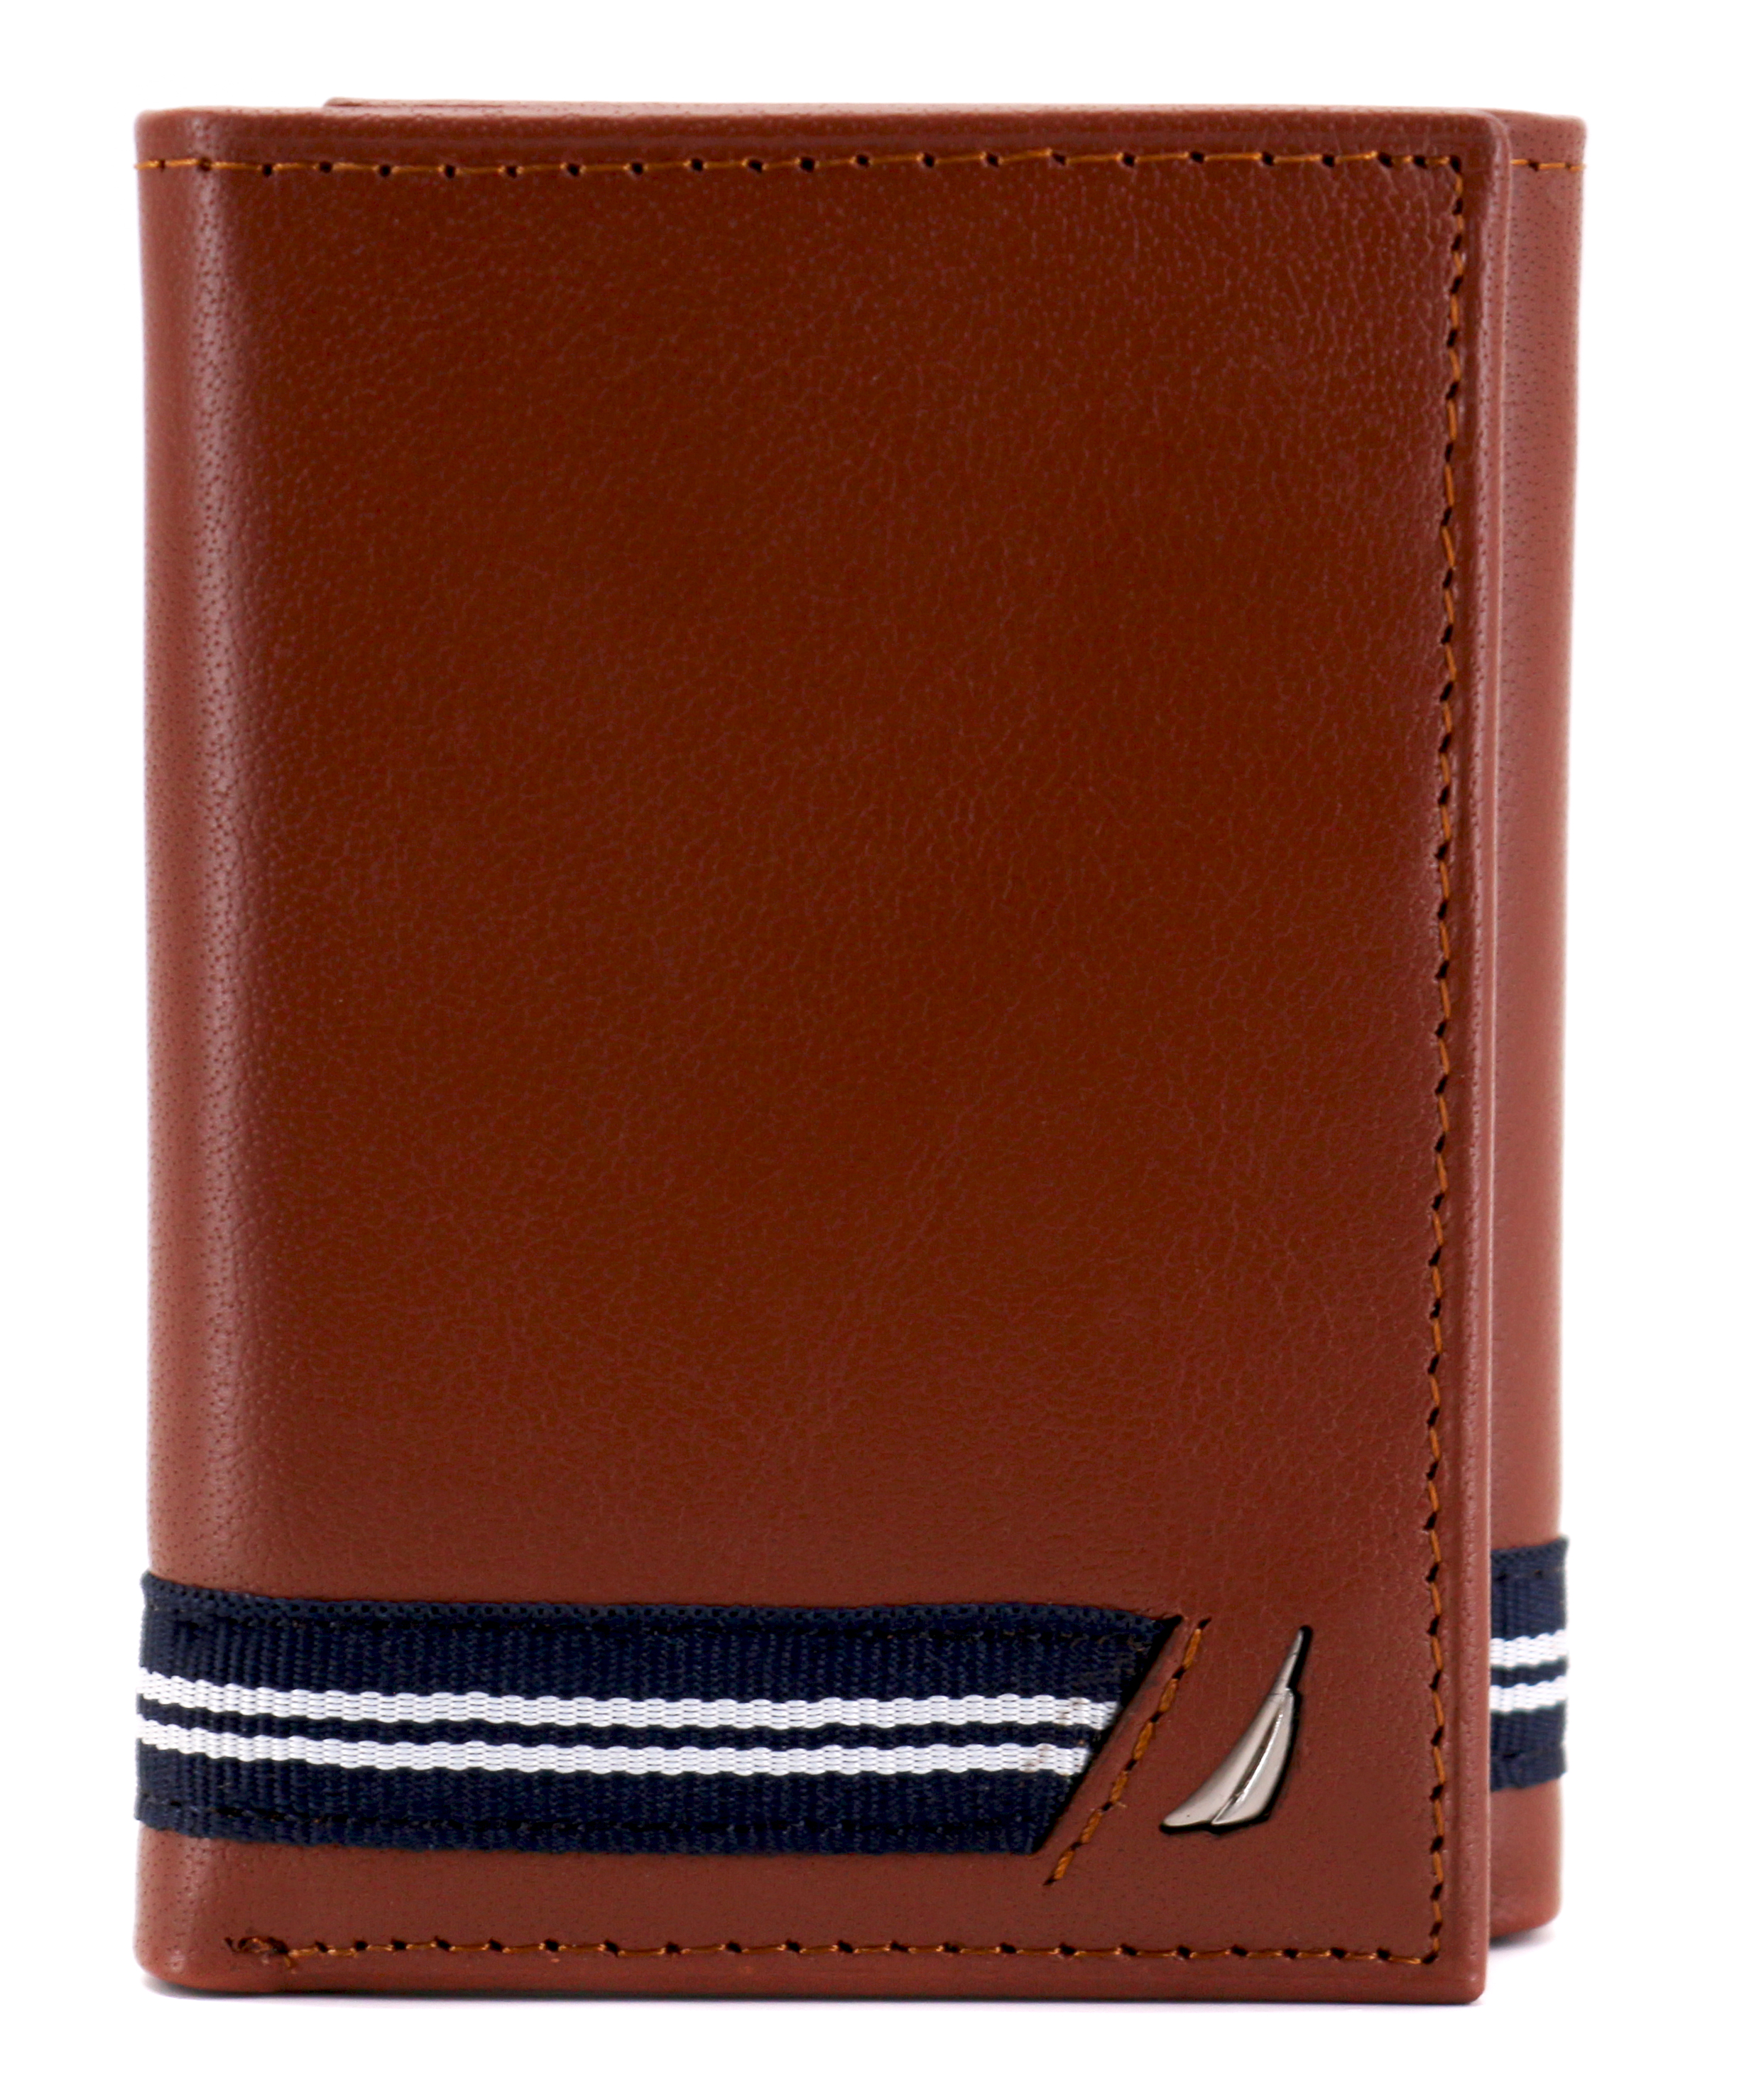 Nautica-Men-039-s-Genuine-Leather-Credit-Card-Id-Holder-Trifold-Wallet thumbnail 23